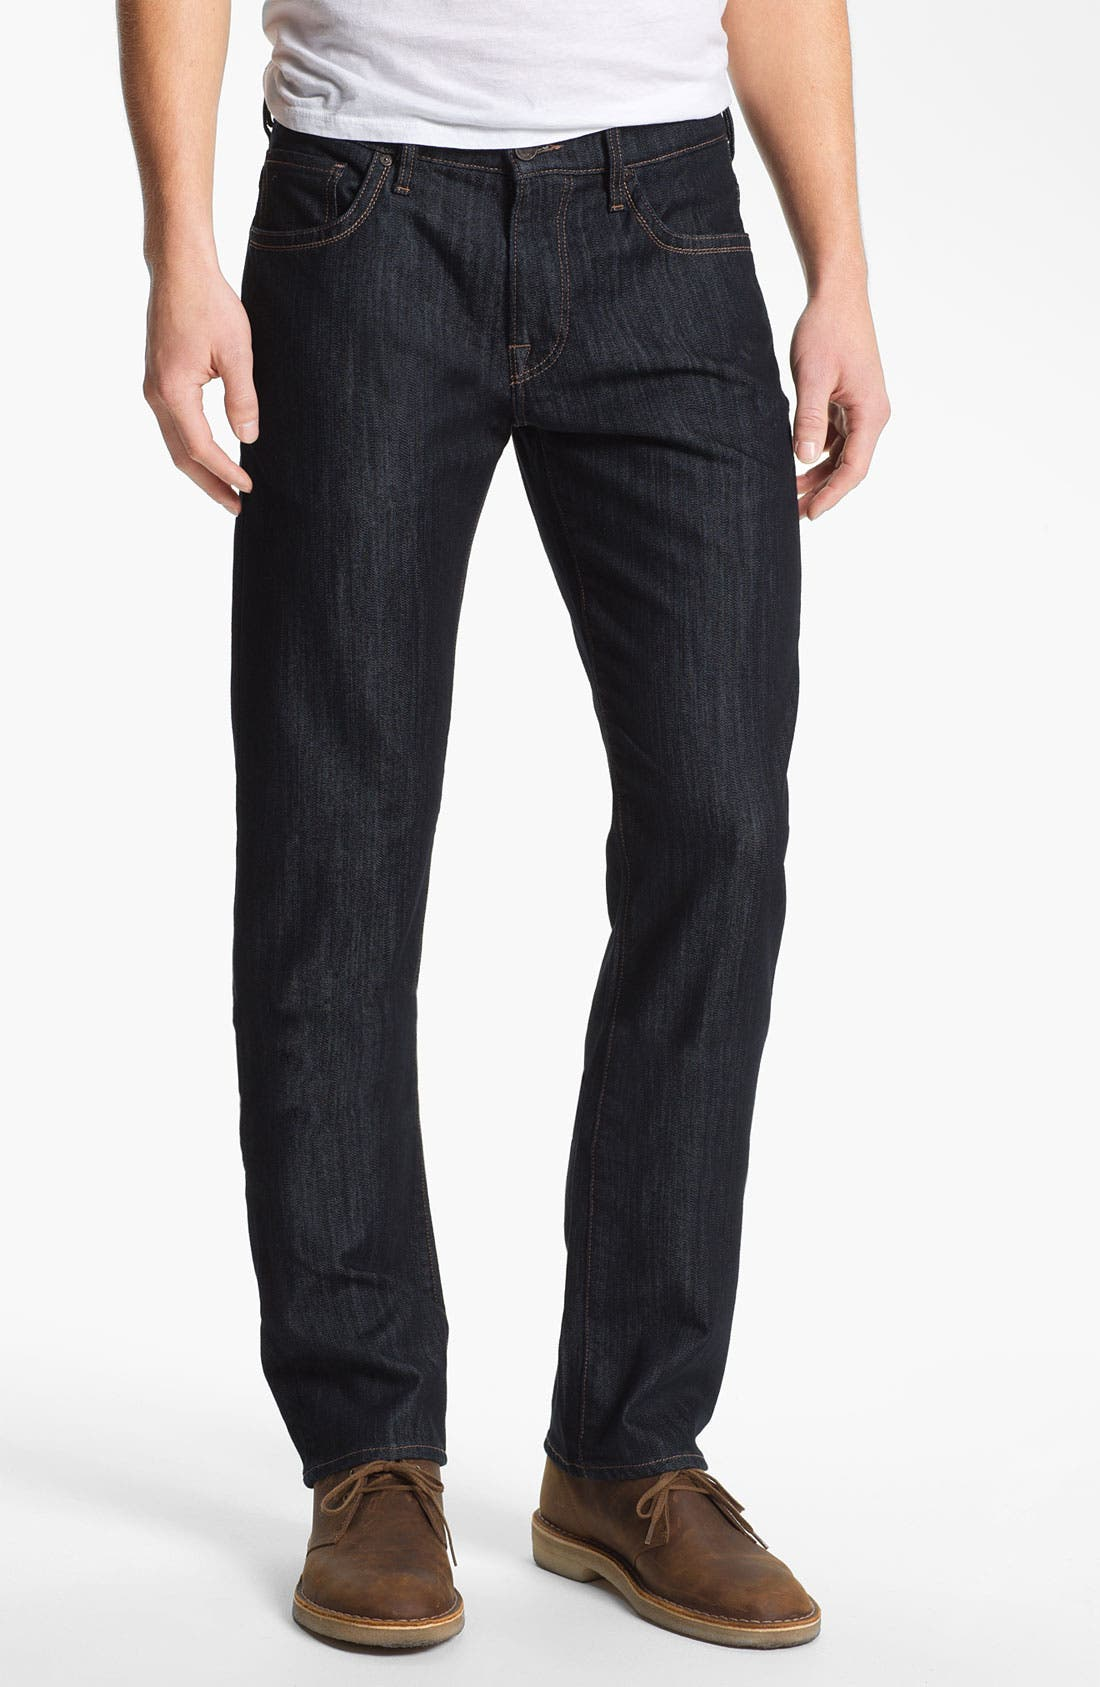 Main Image - 34 Heritage 'Courage' Straight Leg Jeans (Rinse Mercerized) (Online Only)